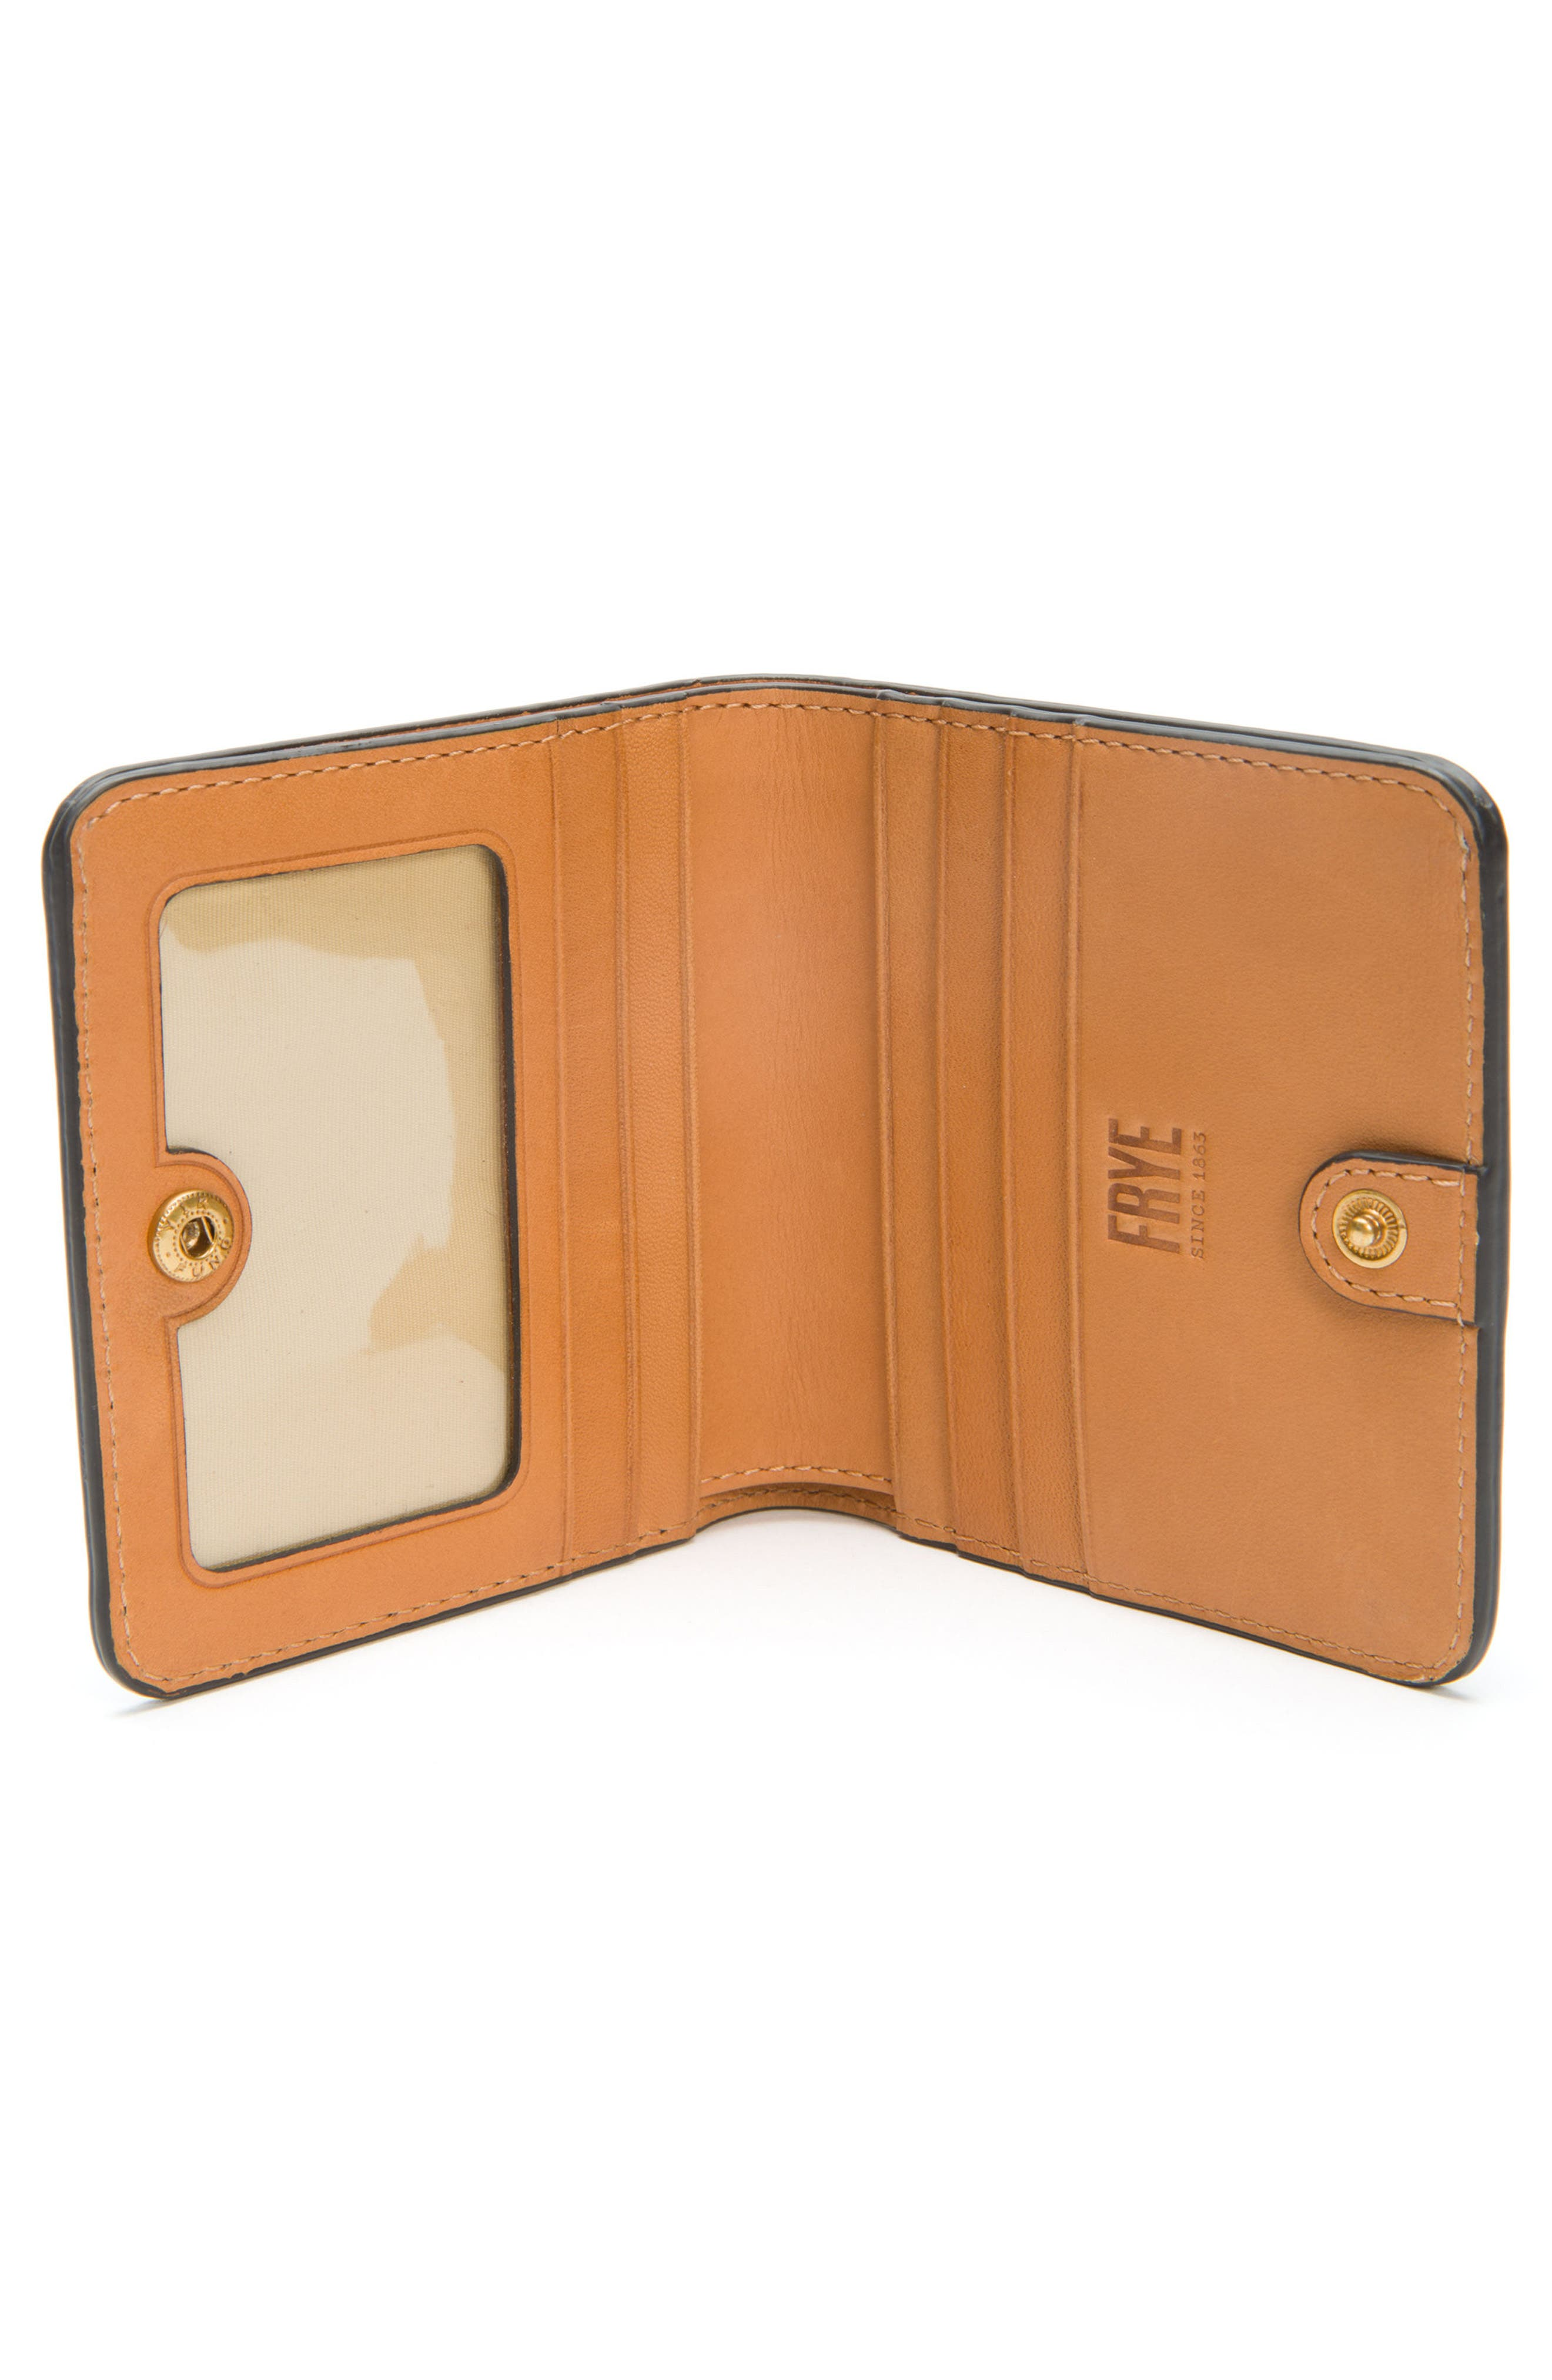 Carson Small Leather Wallet,                             Alternate thumbnail 2, color,                             001